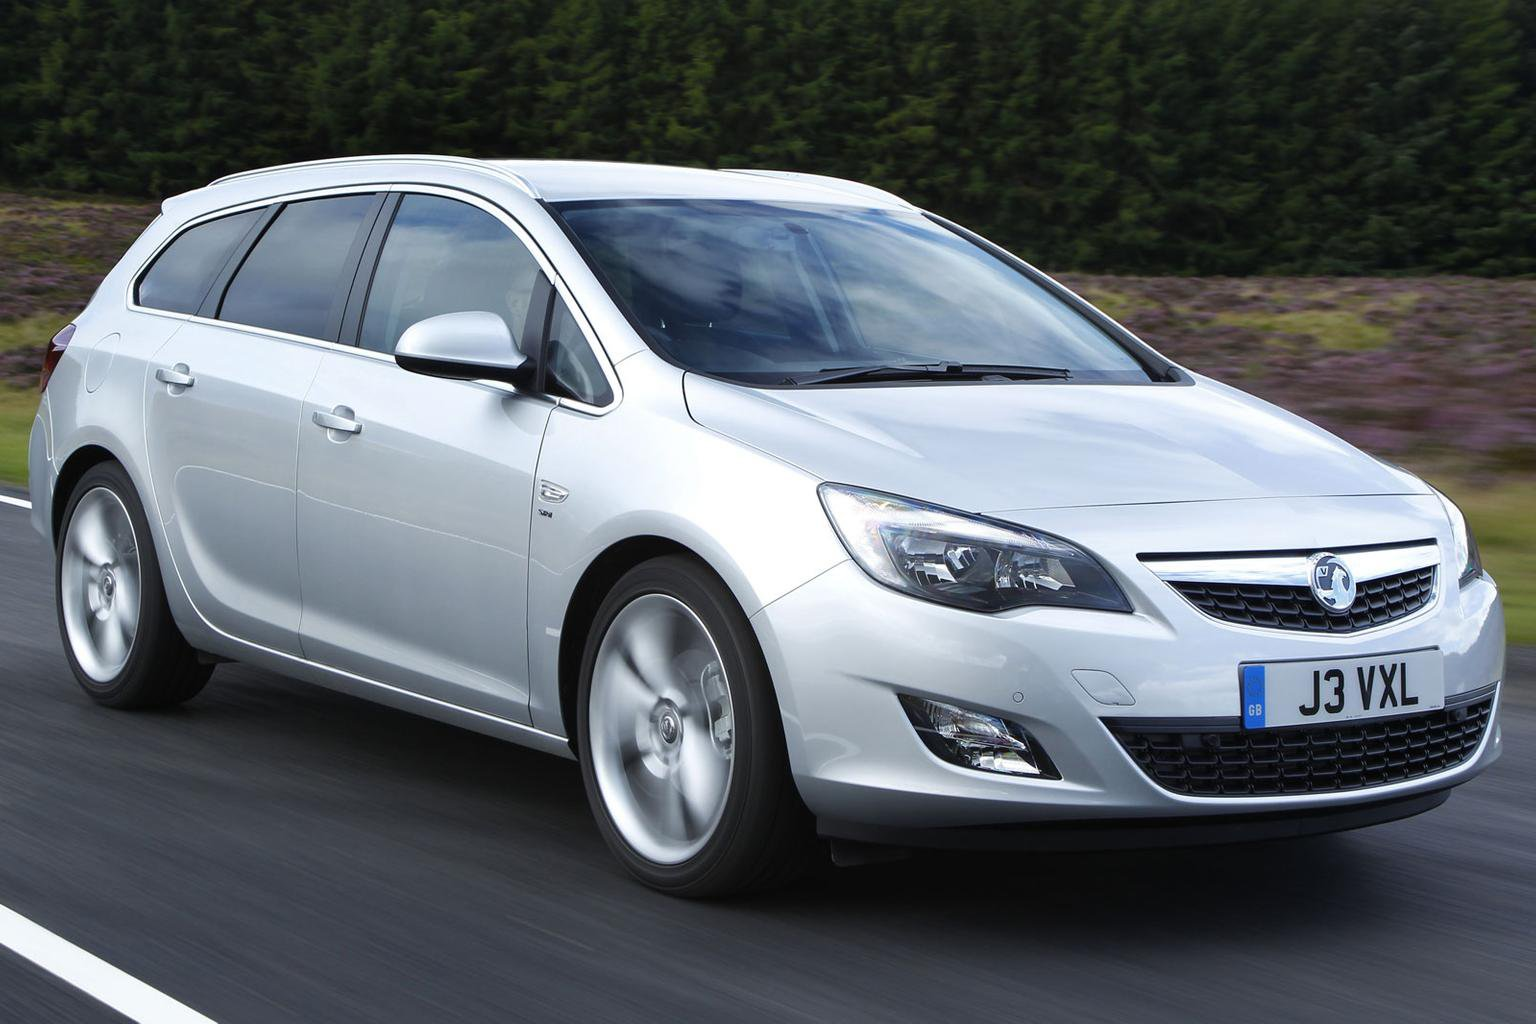 2014 Vauxhall Astra Sports Tourer 1.6 CDTi review